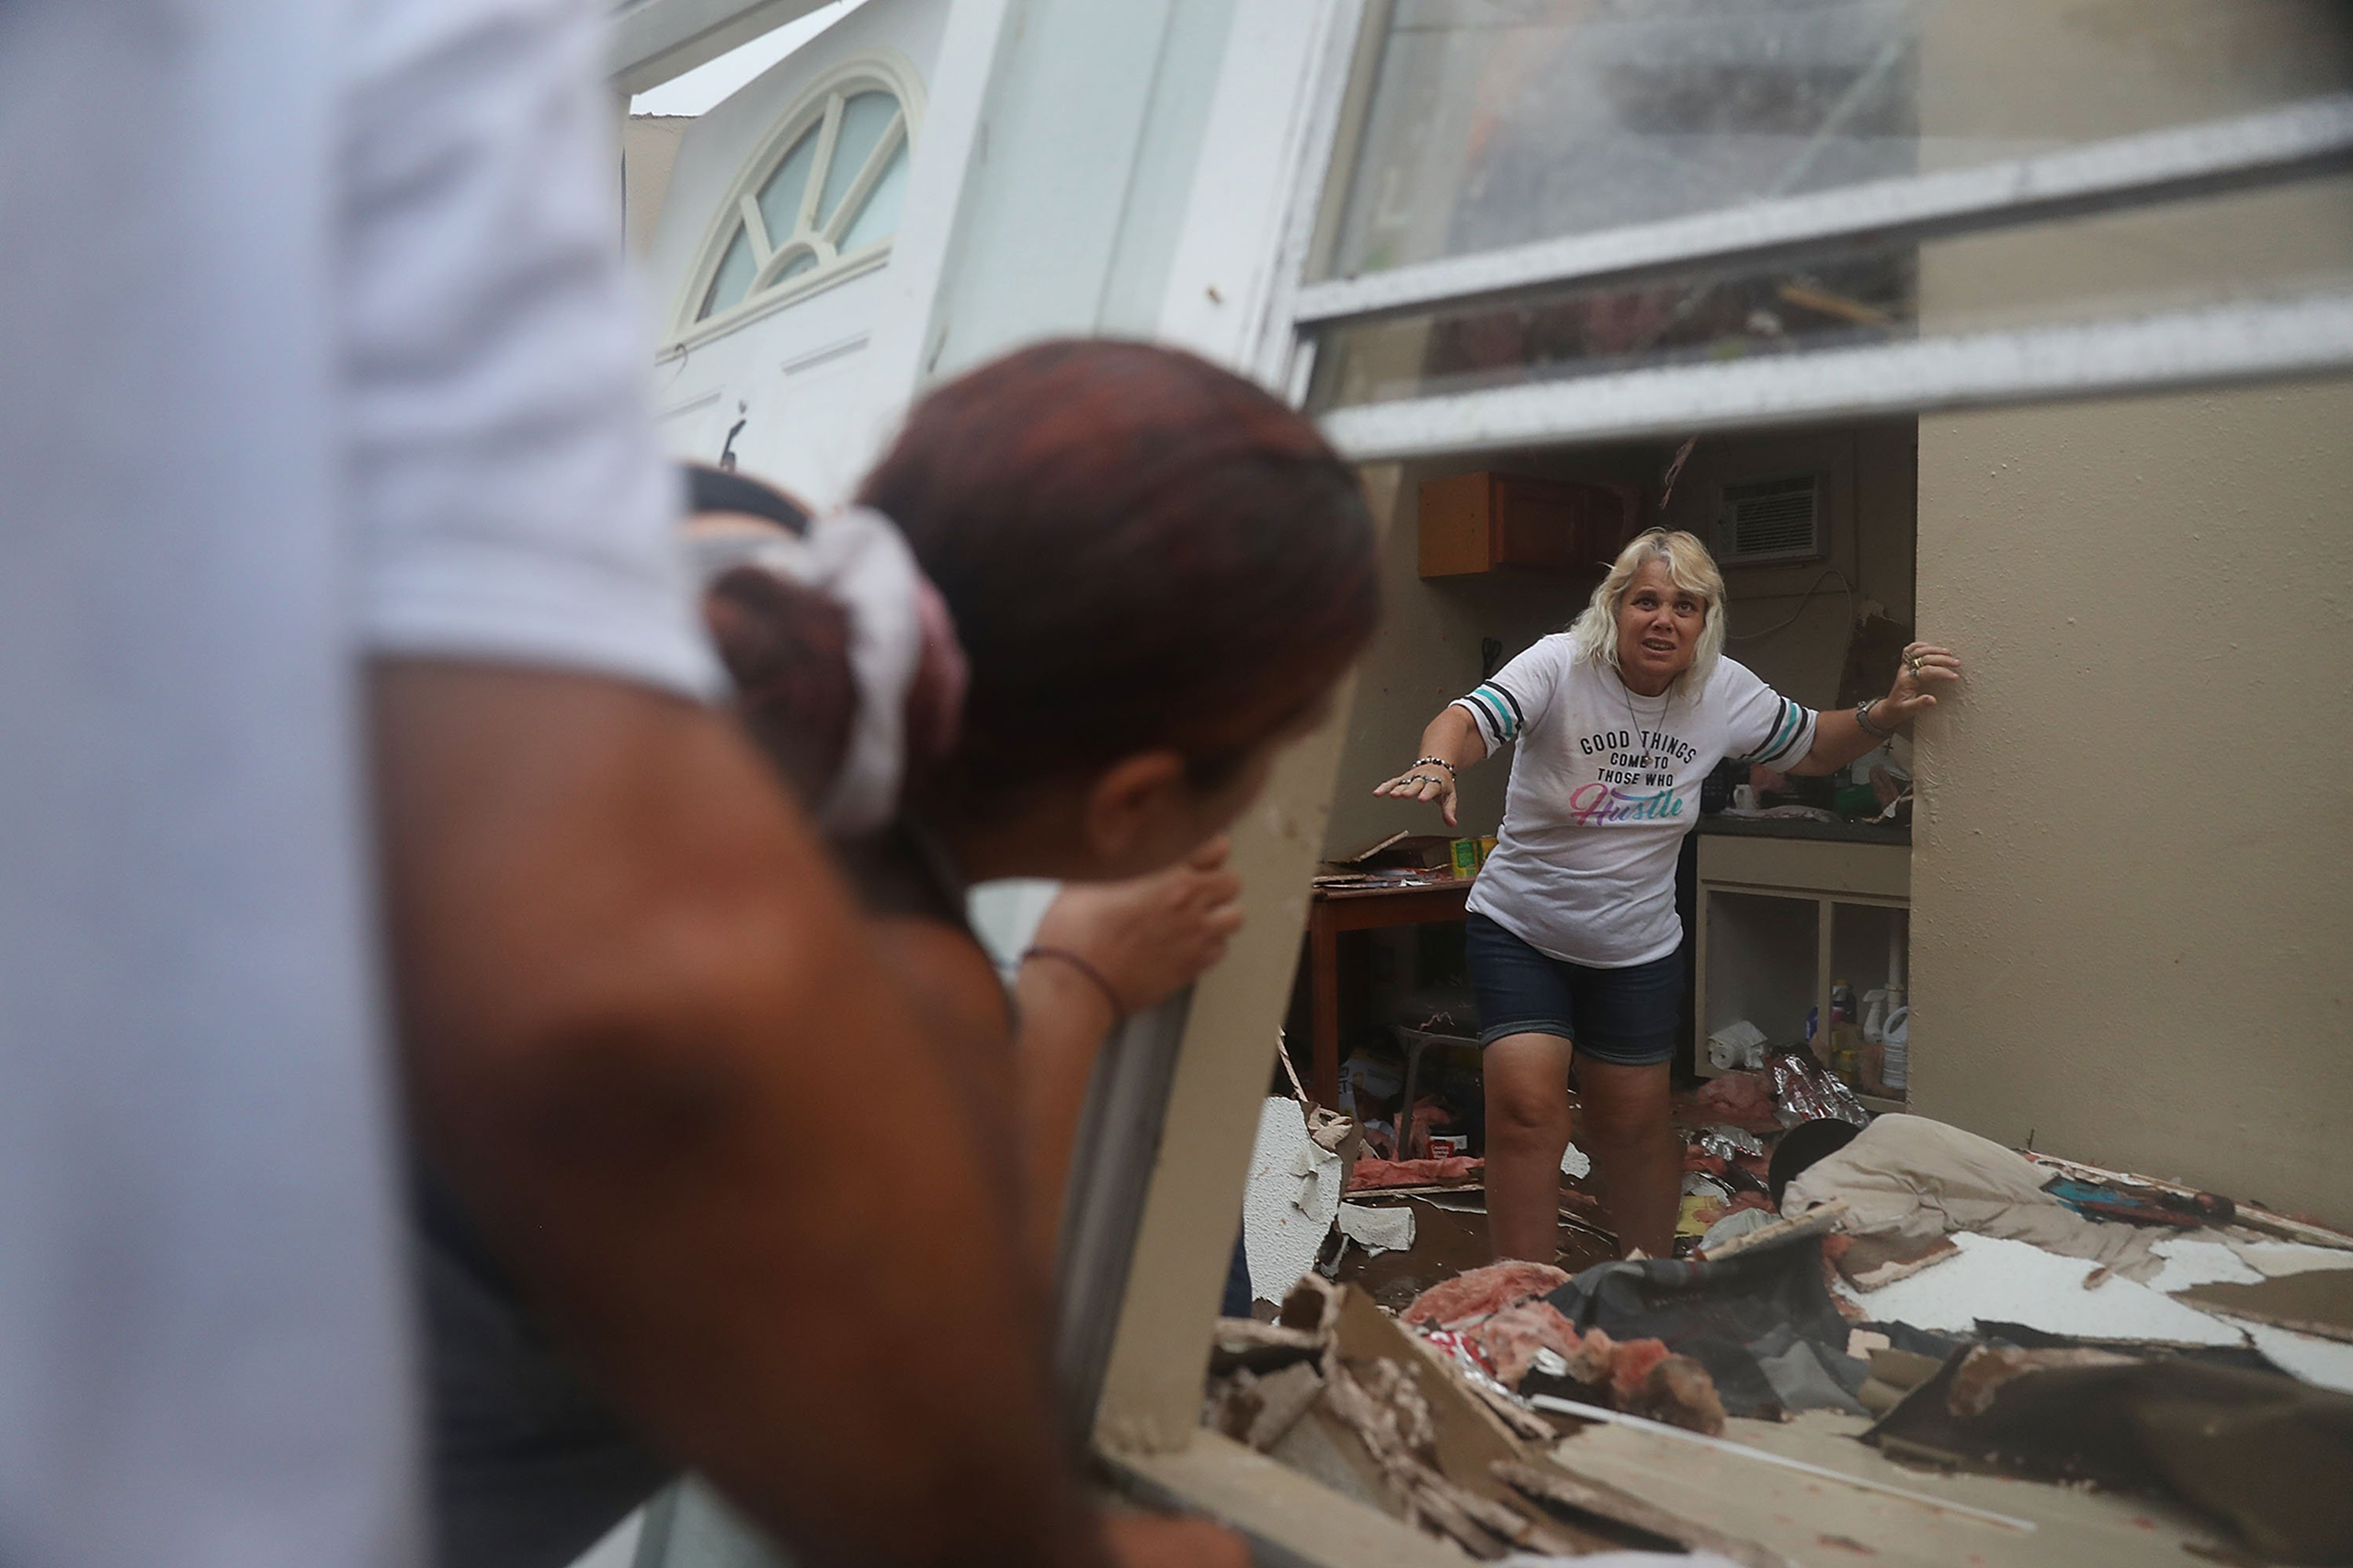 Donna Raney makes her way out of the wreckage of her home as Daisy Graham tells her she will help her out of the window after Hurricane Harvey destroyed the apartment in Rockport, Texas,  on Aug. 26, 2017.